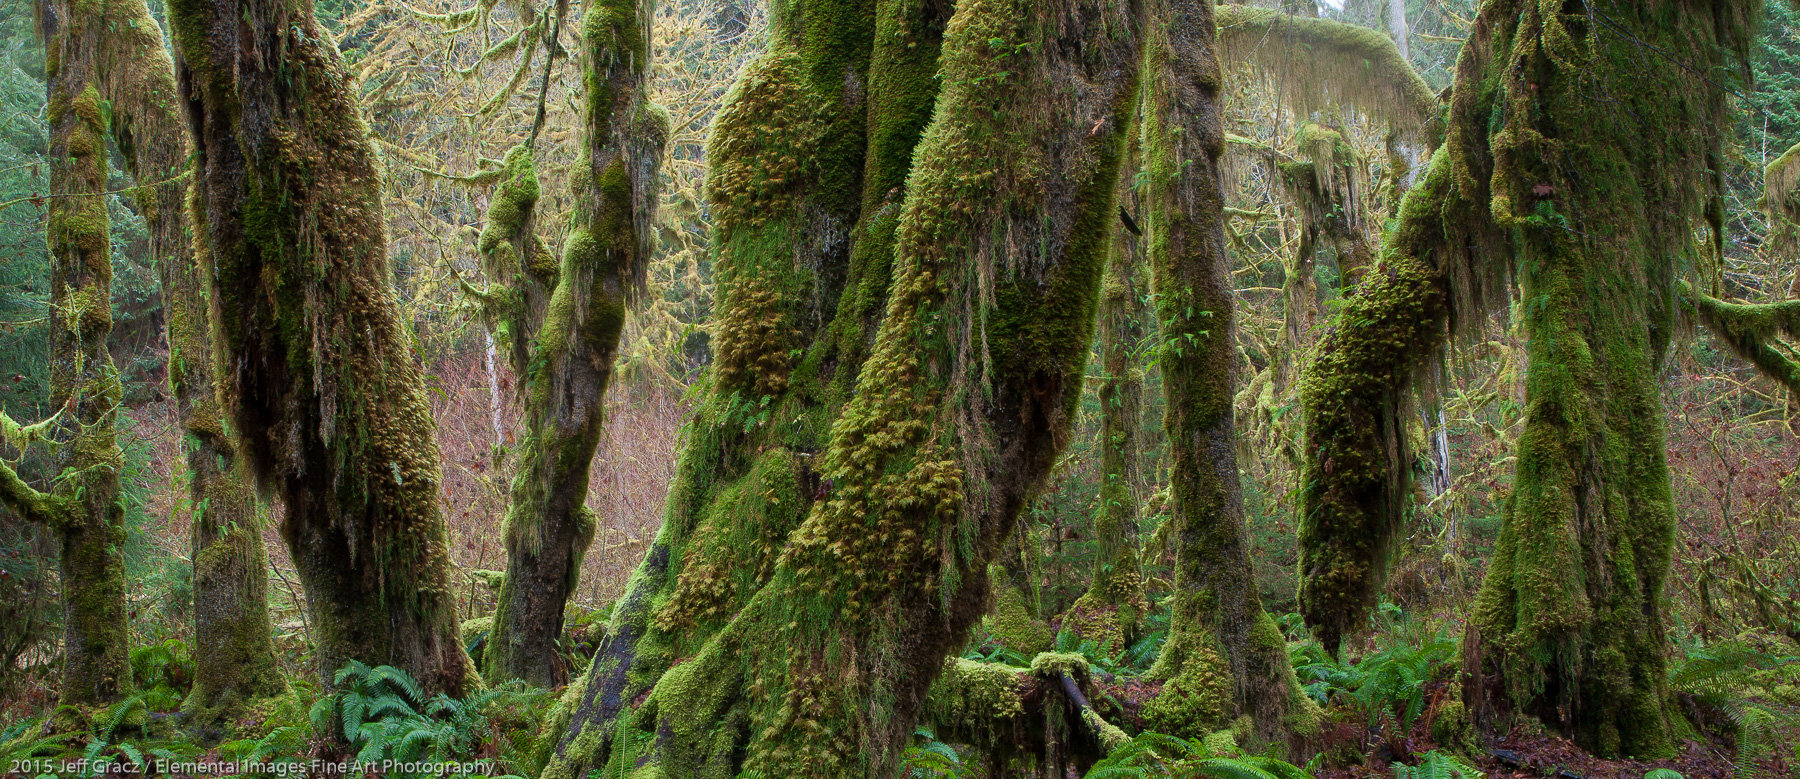 Hall of Mosses II | Olympic National Park | WA | USA - © 2015 Jeff Gracz / Elemental Images Fine Art Photography - All Rights Reserved Worldwide